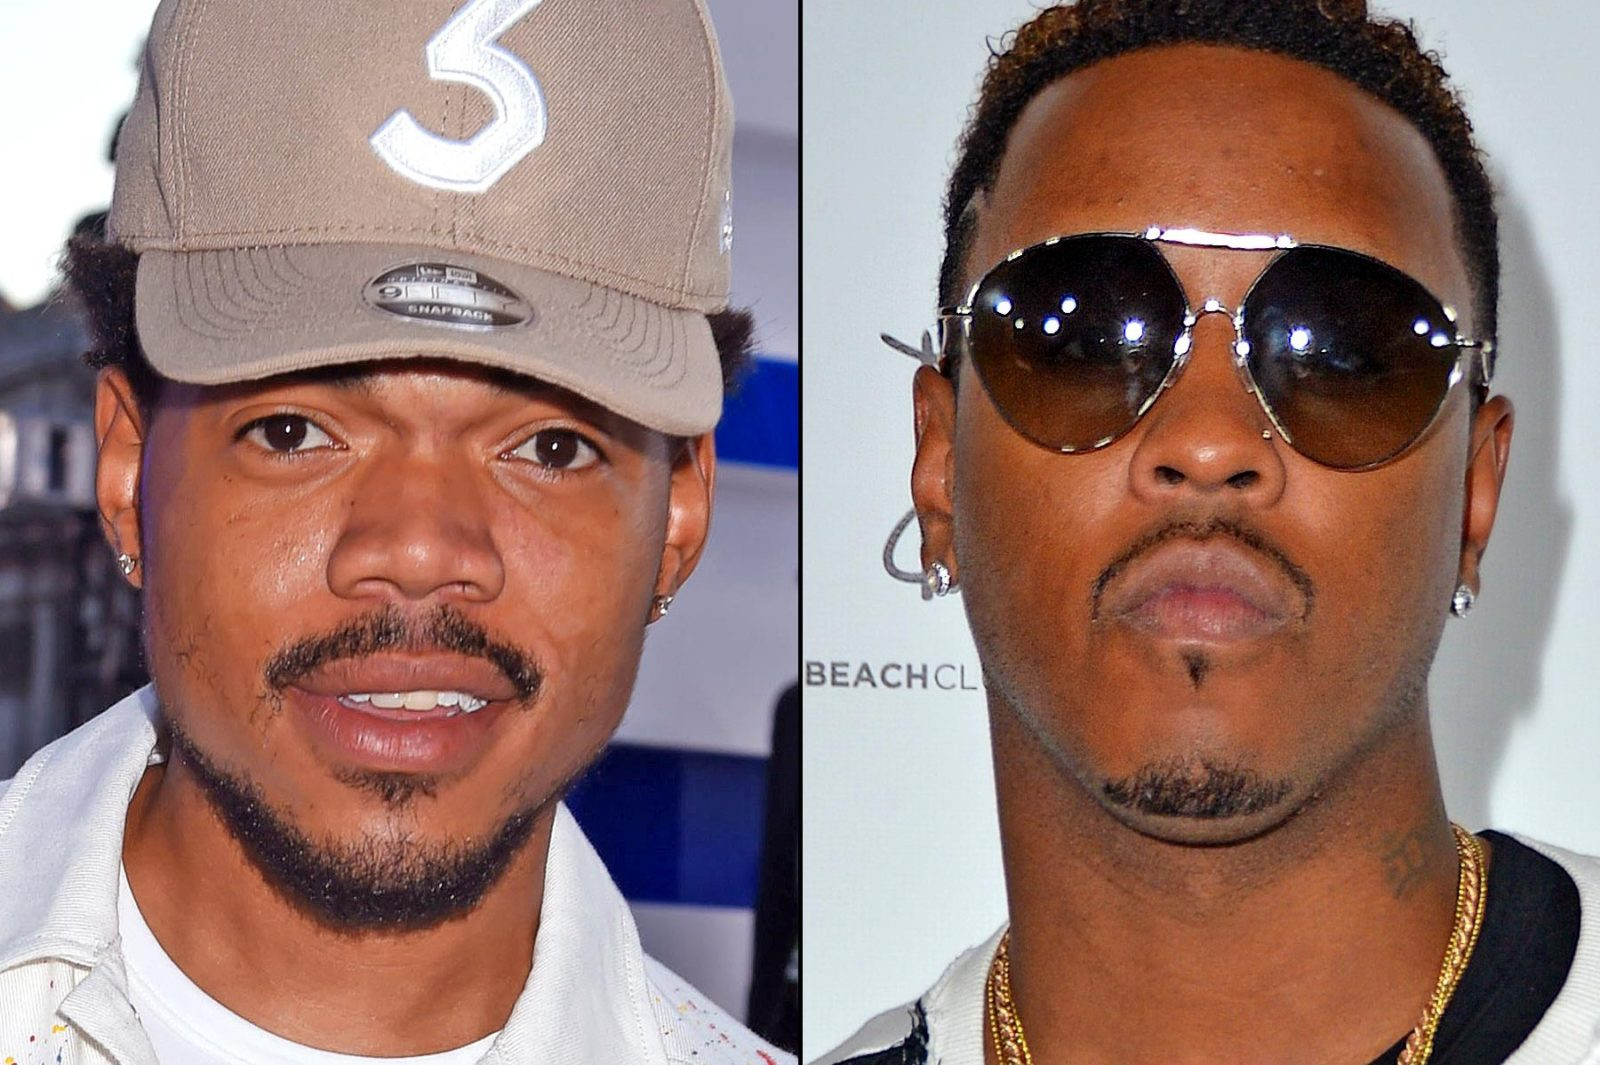 Chance The Rapper and Jeremih